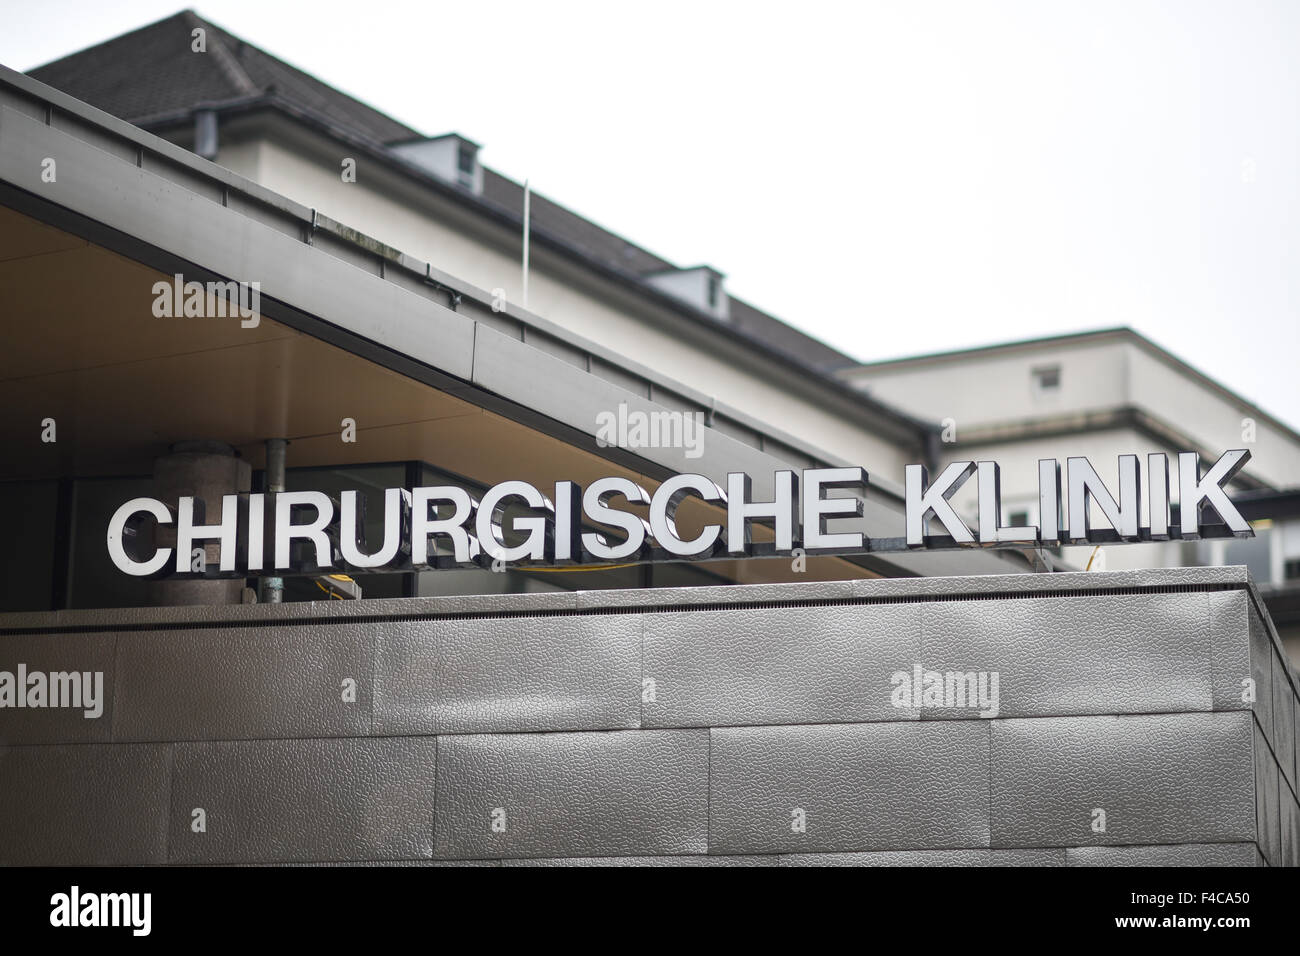 Heidelberg, Germany. 16th Oct, 2015. The entrance to the Chirurgische Klinik (lit. surgical clinic) at the Universitaetsklinikum - Stock Image